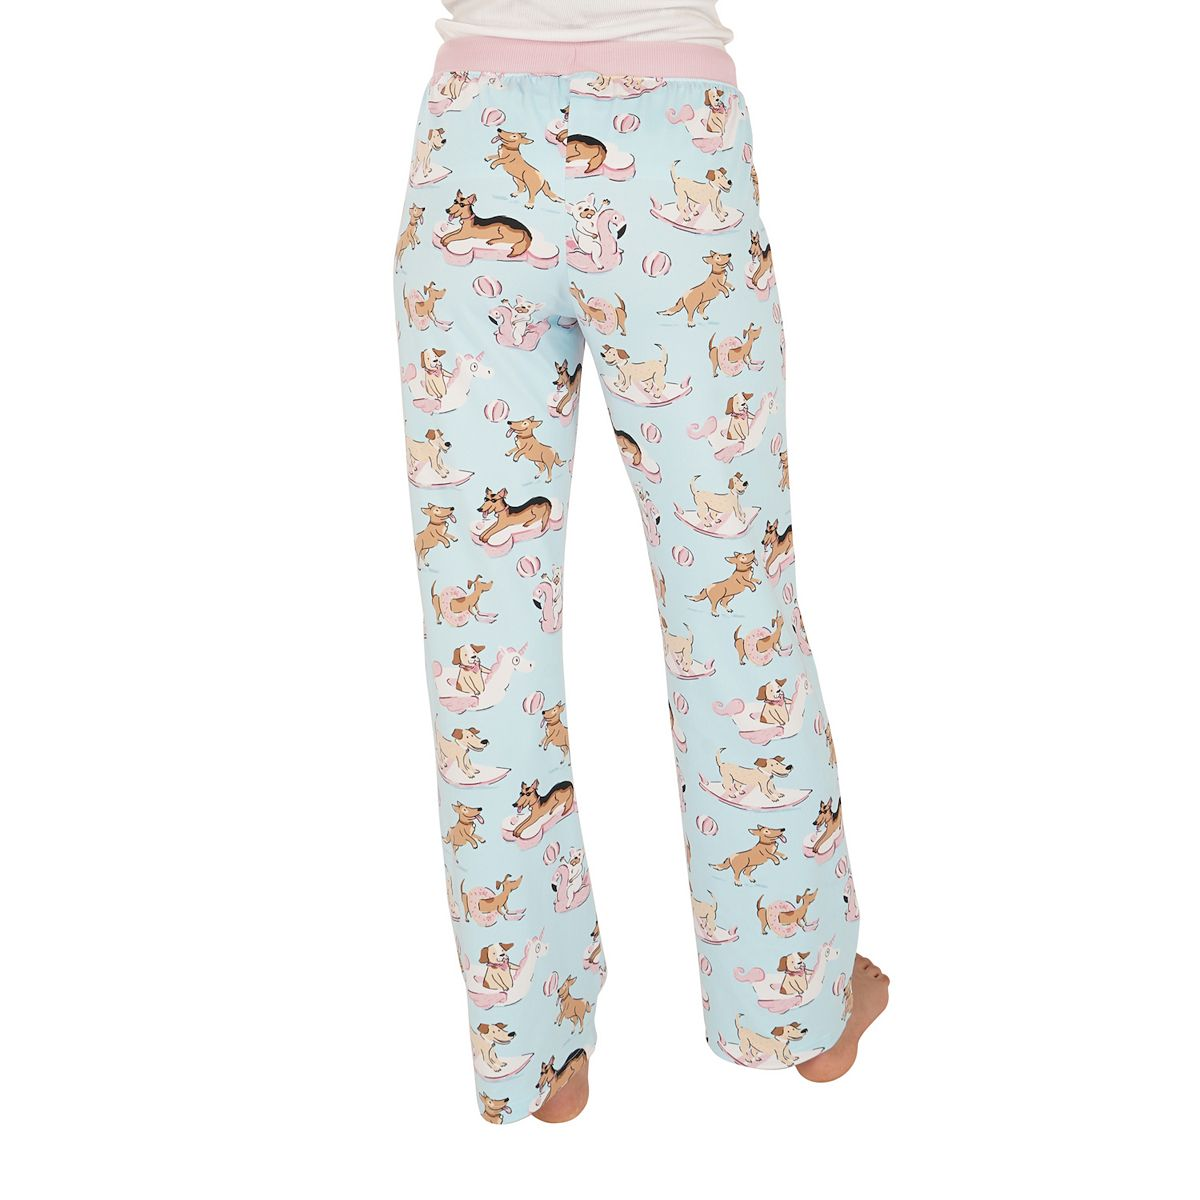 Women's Nite Nite by Munki Munki Soft Pajama Pants Coffee Cups ASOSa